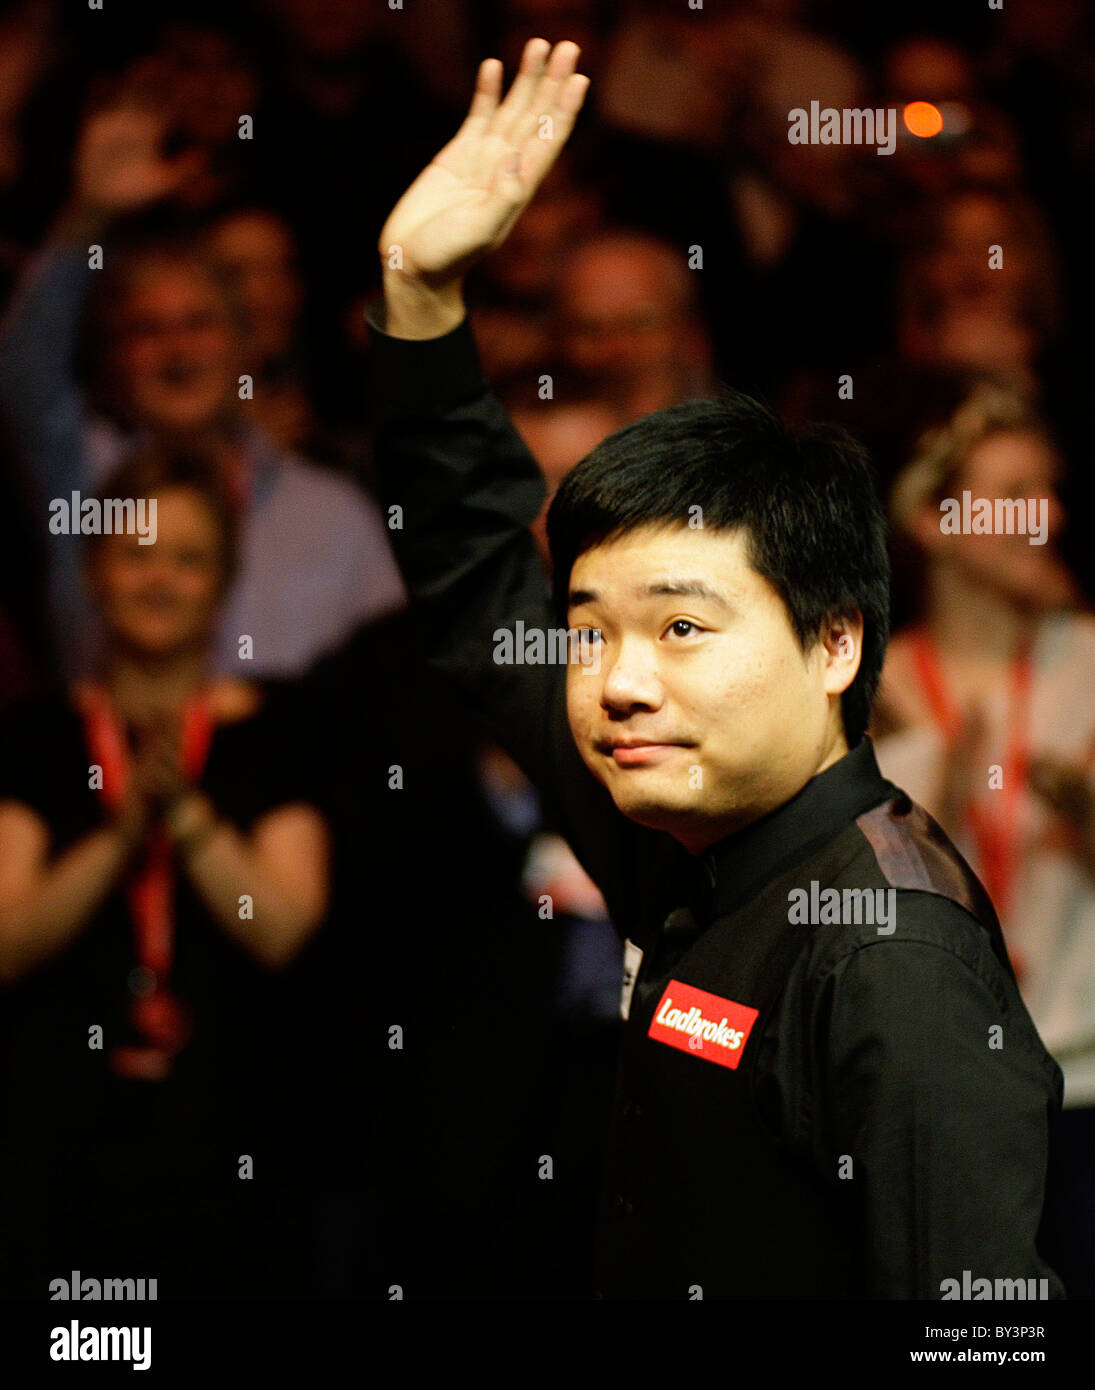 16.01.2011 Ding Junhu Masters Snooker Champion 2011, he beat Marco Fu in the Final by 10-4 at the Wembley Arena. - Stock Image